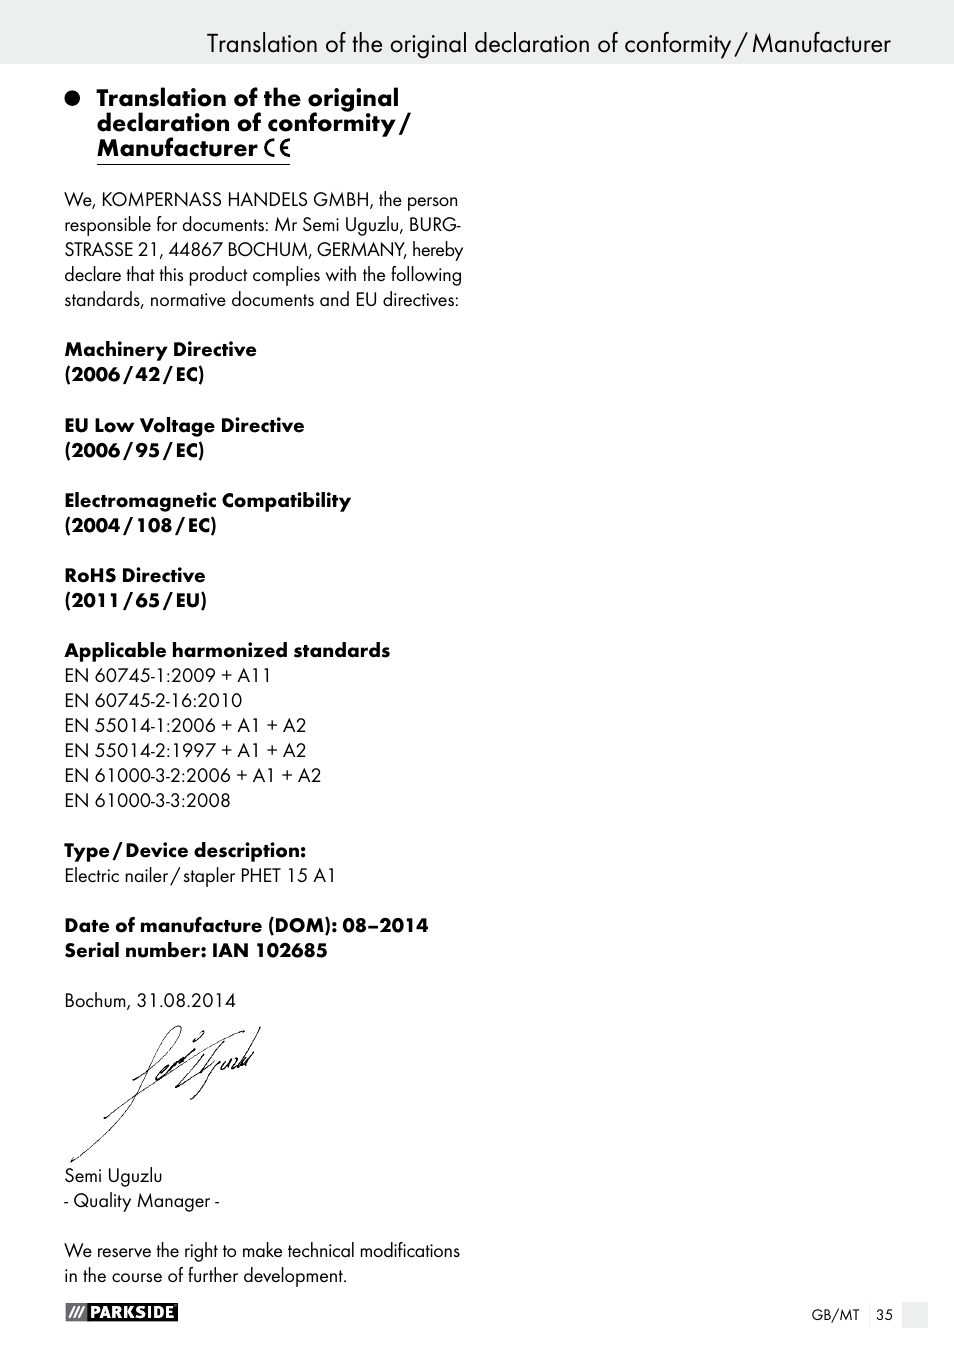 Warranty / disposal | Parkside PHET 15 A1 User Manual | Page 35 / 44